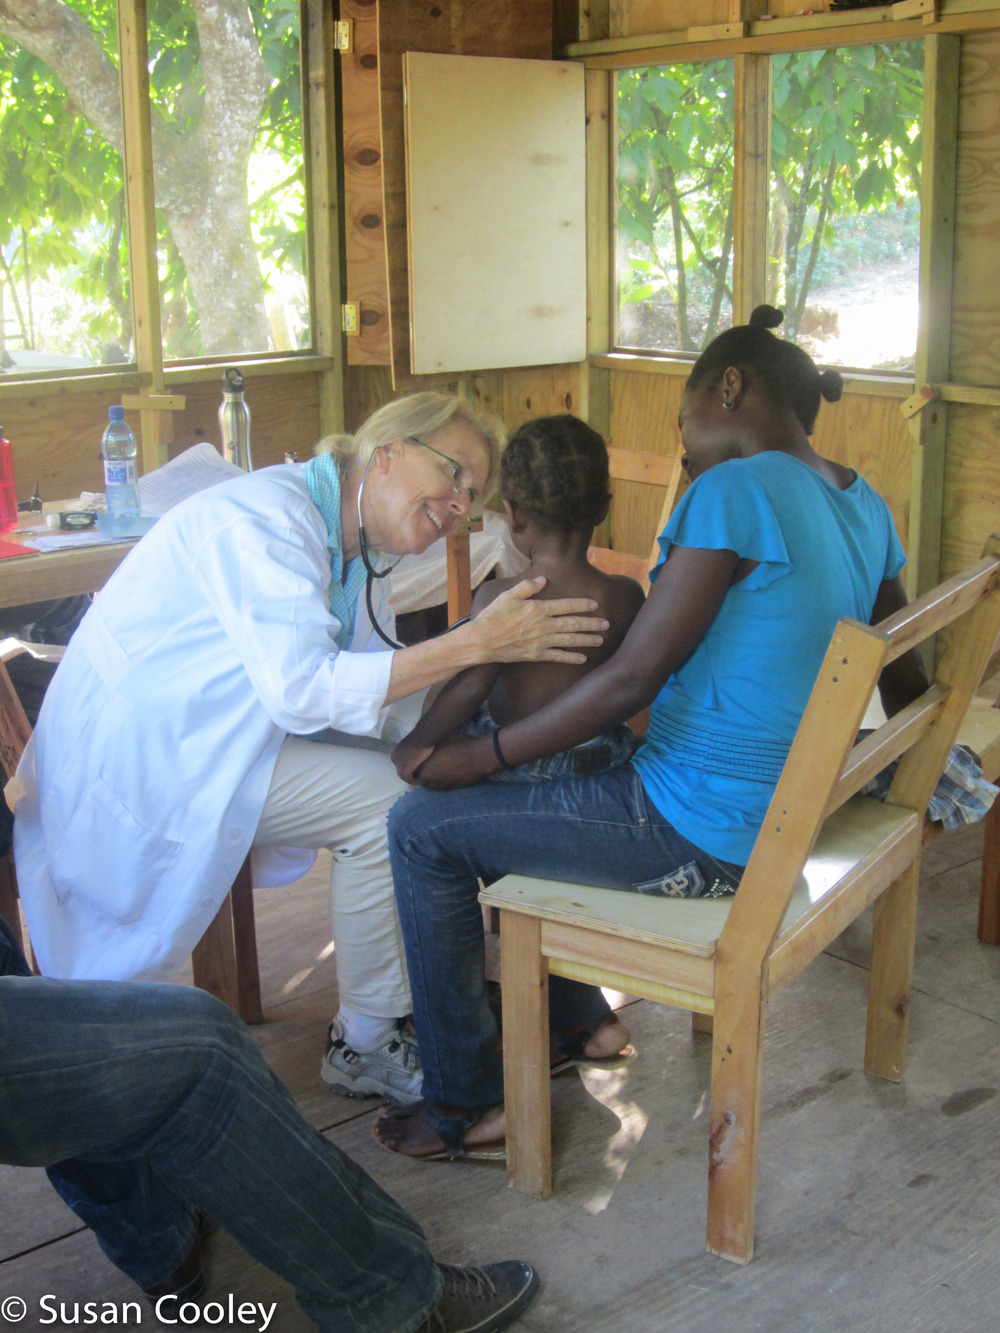 Susan examines clinic patient, 2013.